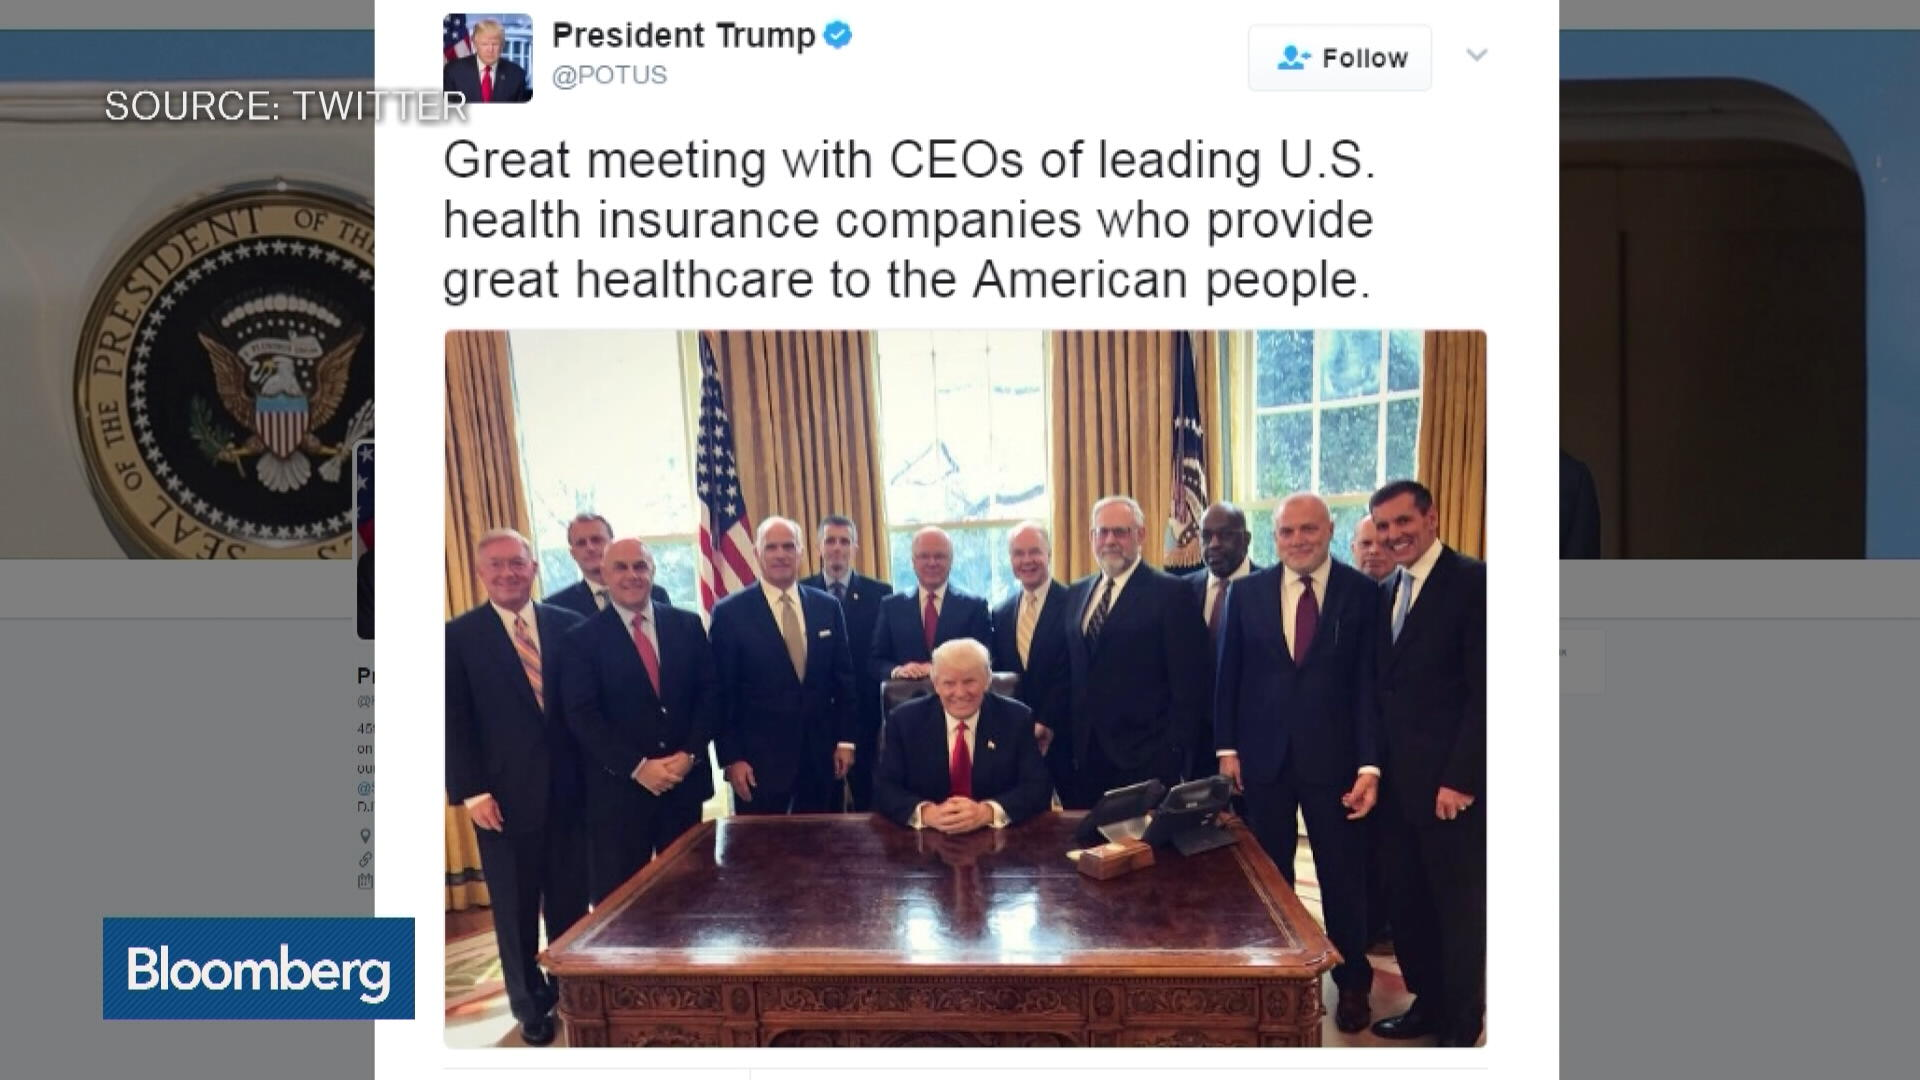 Aetna CEO Says Bipartisan Solution Needed on Health Care